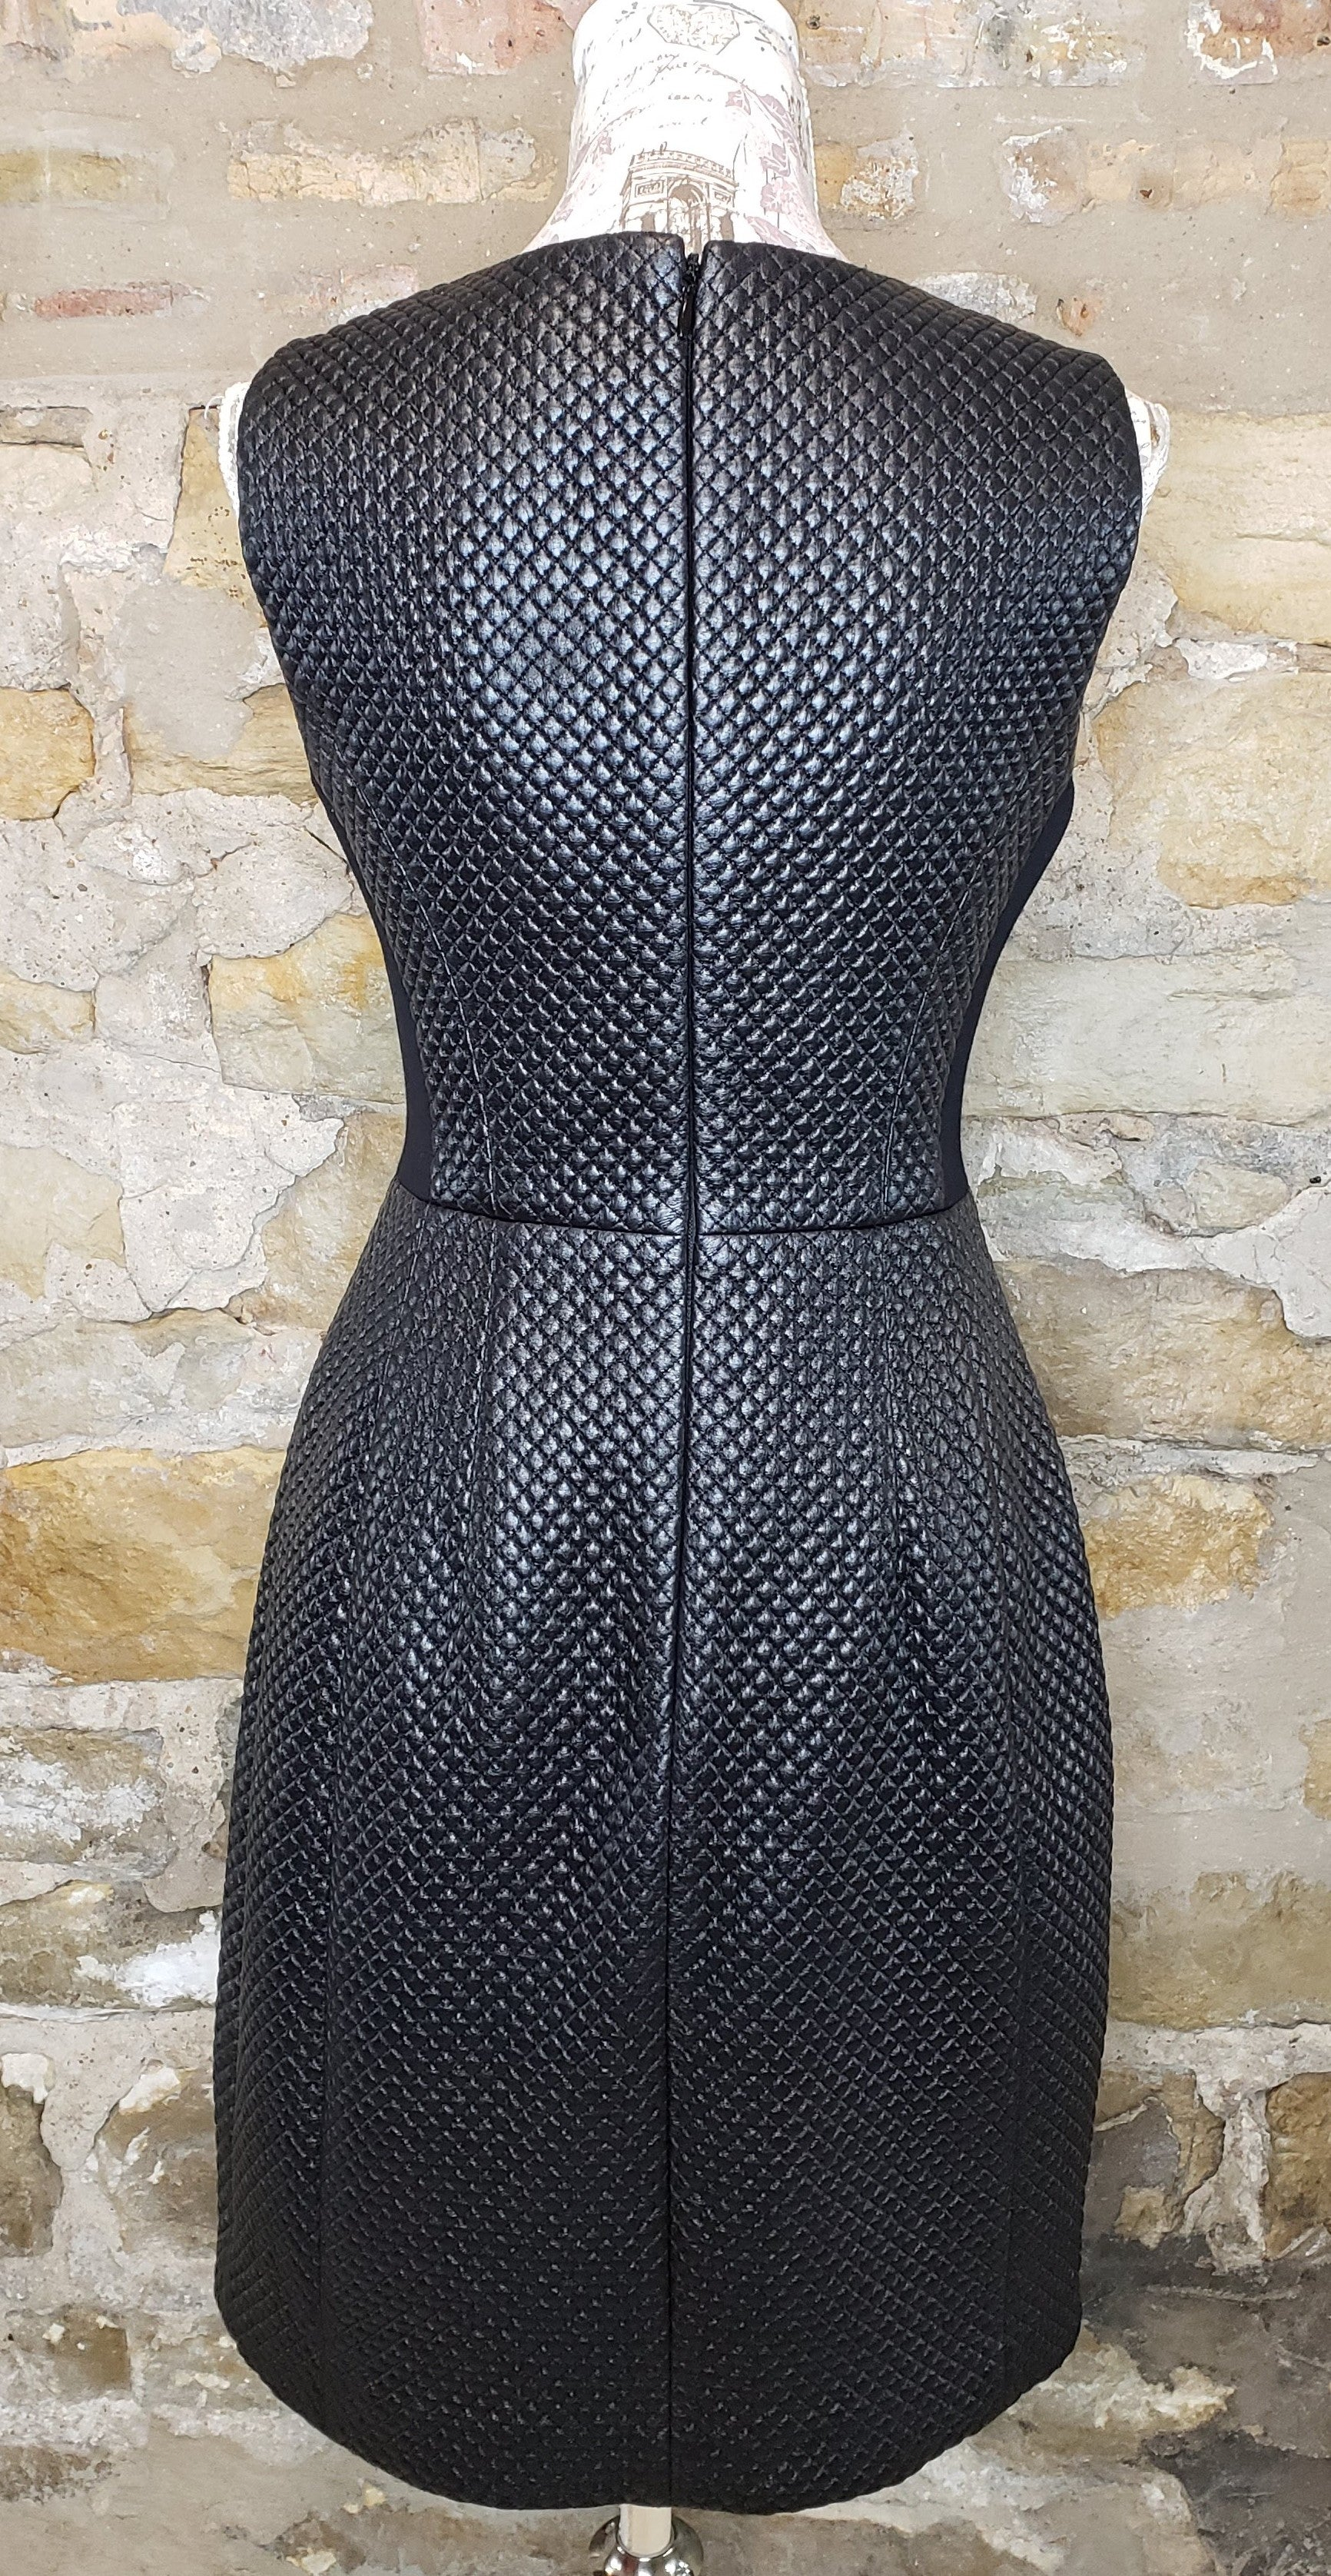 BCBG MaxAzria Quilted Leather Dress Sz 6